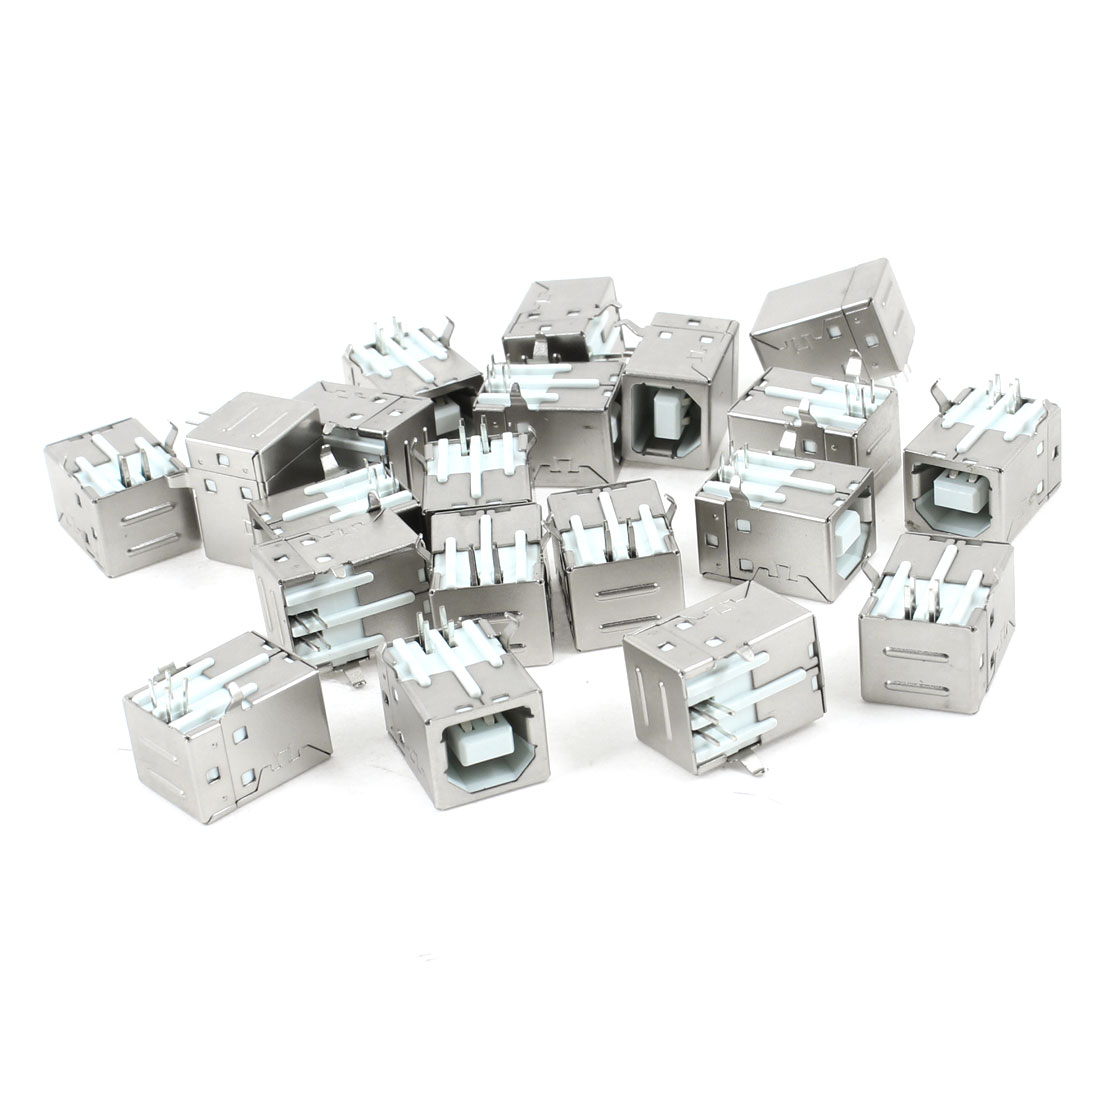 20 Pcs Shielded Right Angle 4 Pin USB 2.0 Type B Female Jack Socket